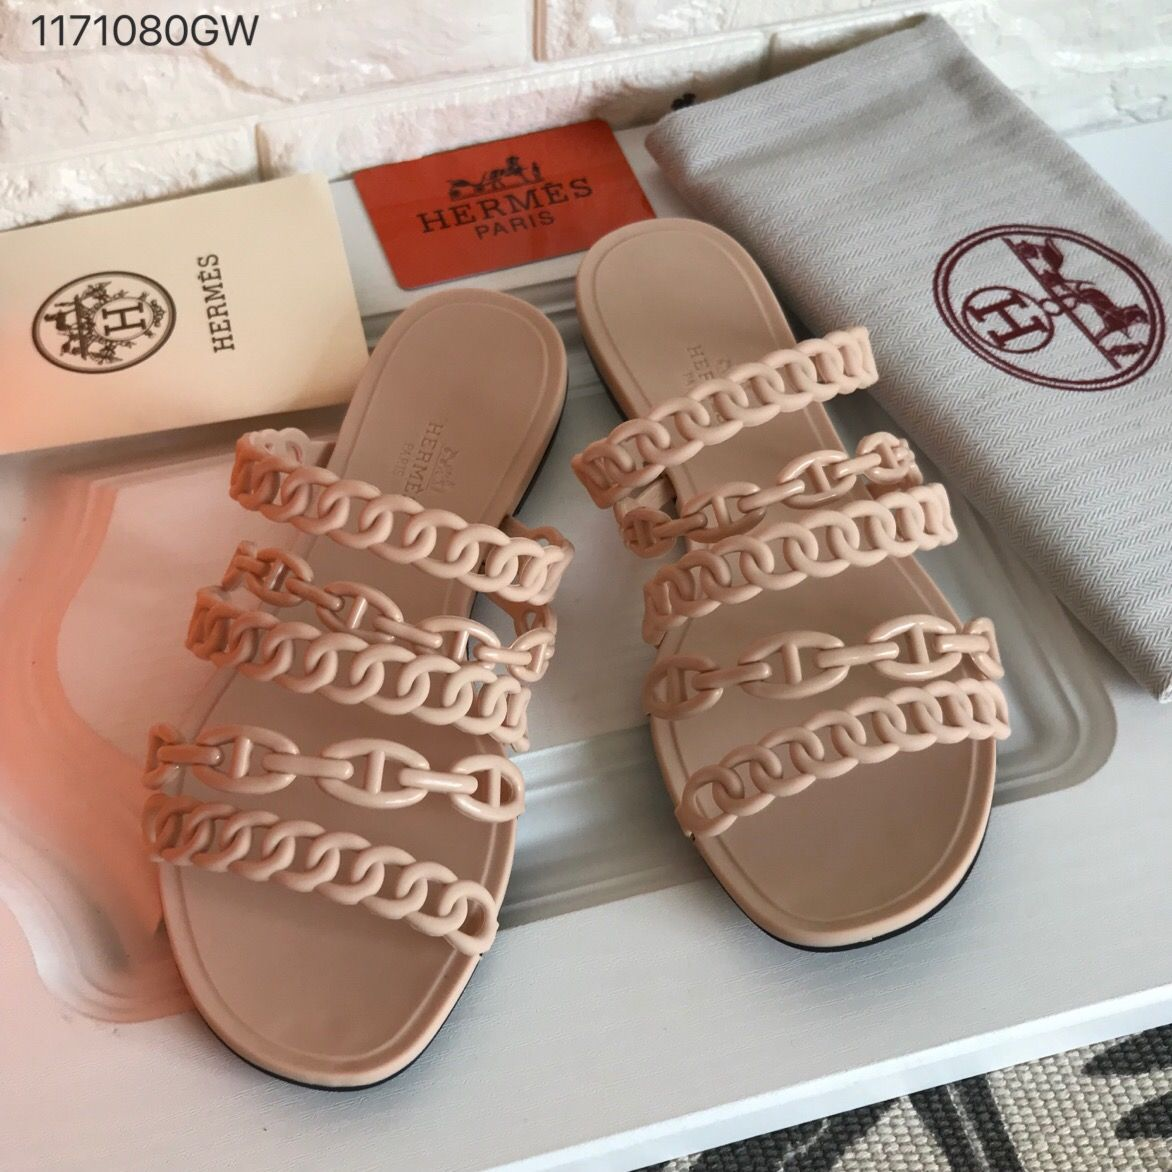 1b0902e0c37c Hermes woman shoes PVC rubber chain slippers nude